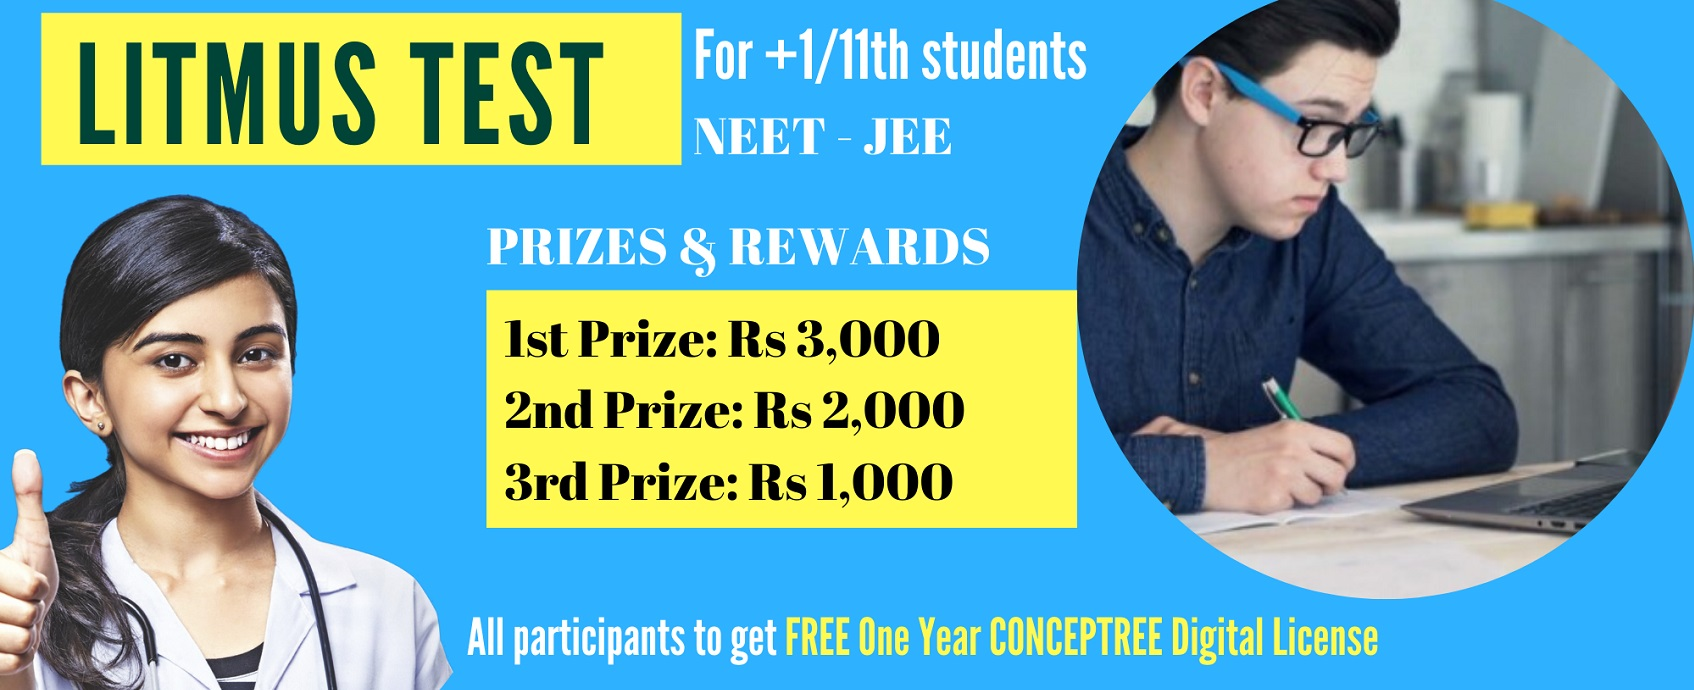 Litmus Test-2020 For NEET and JEE